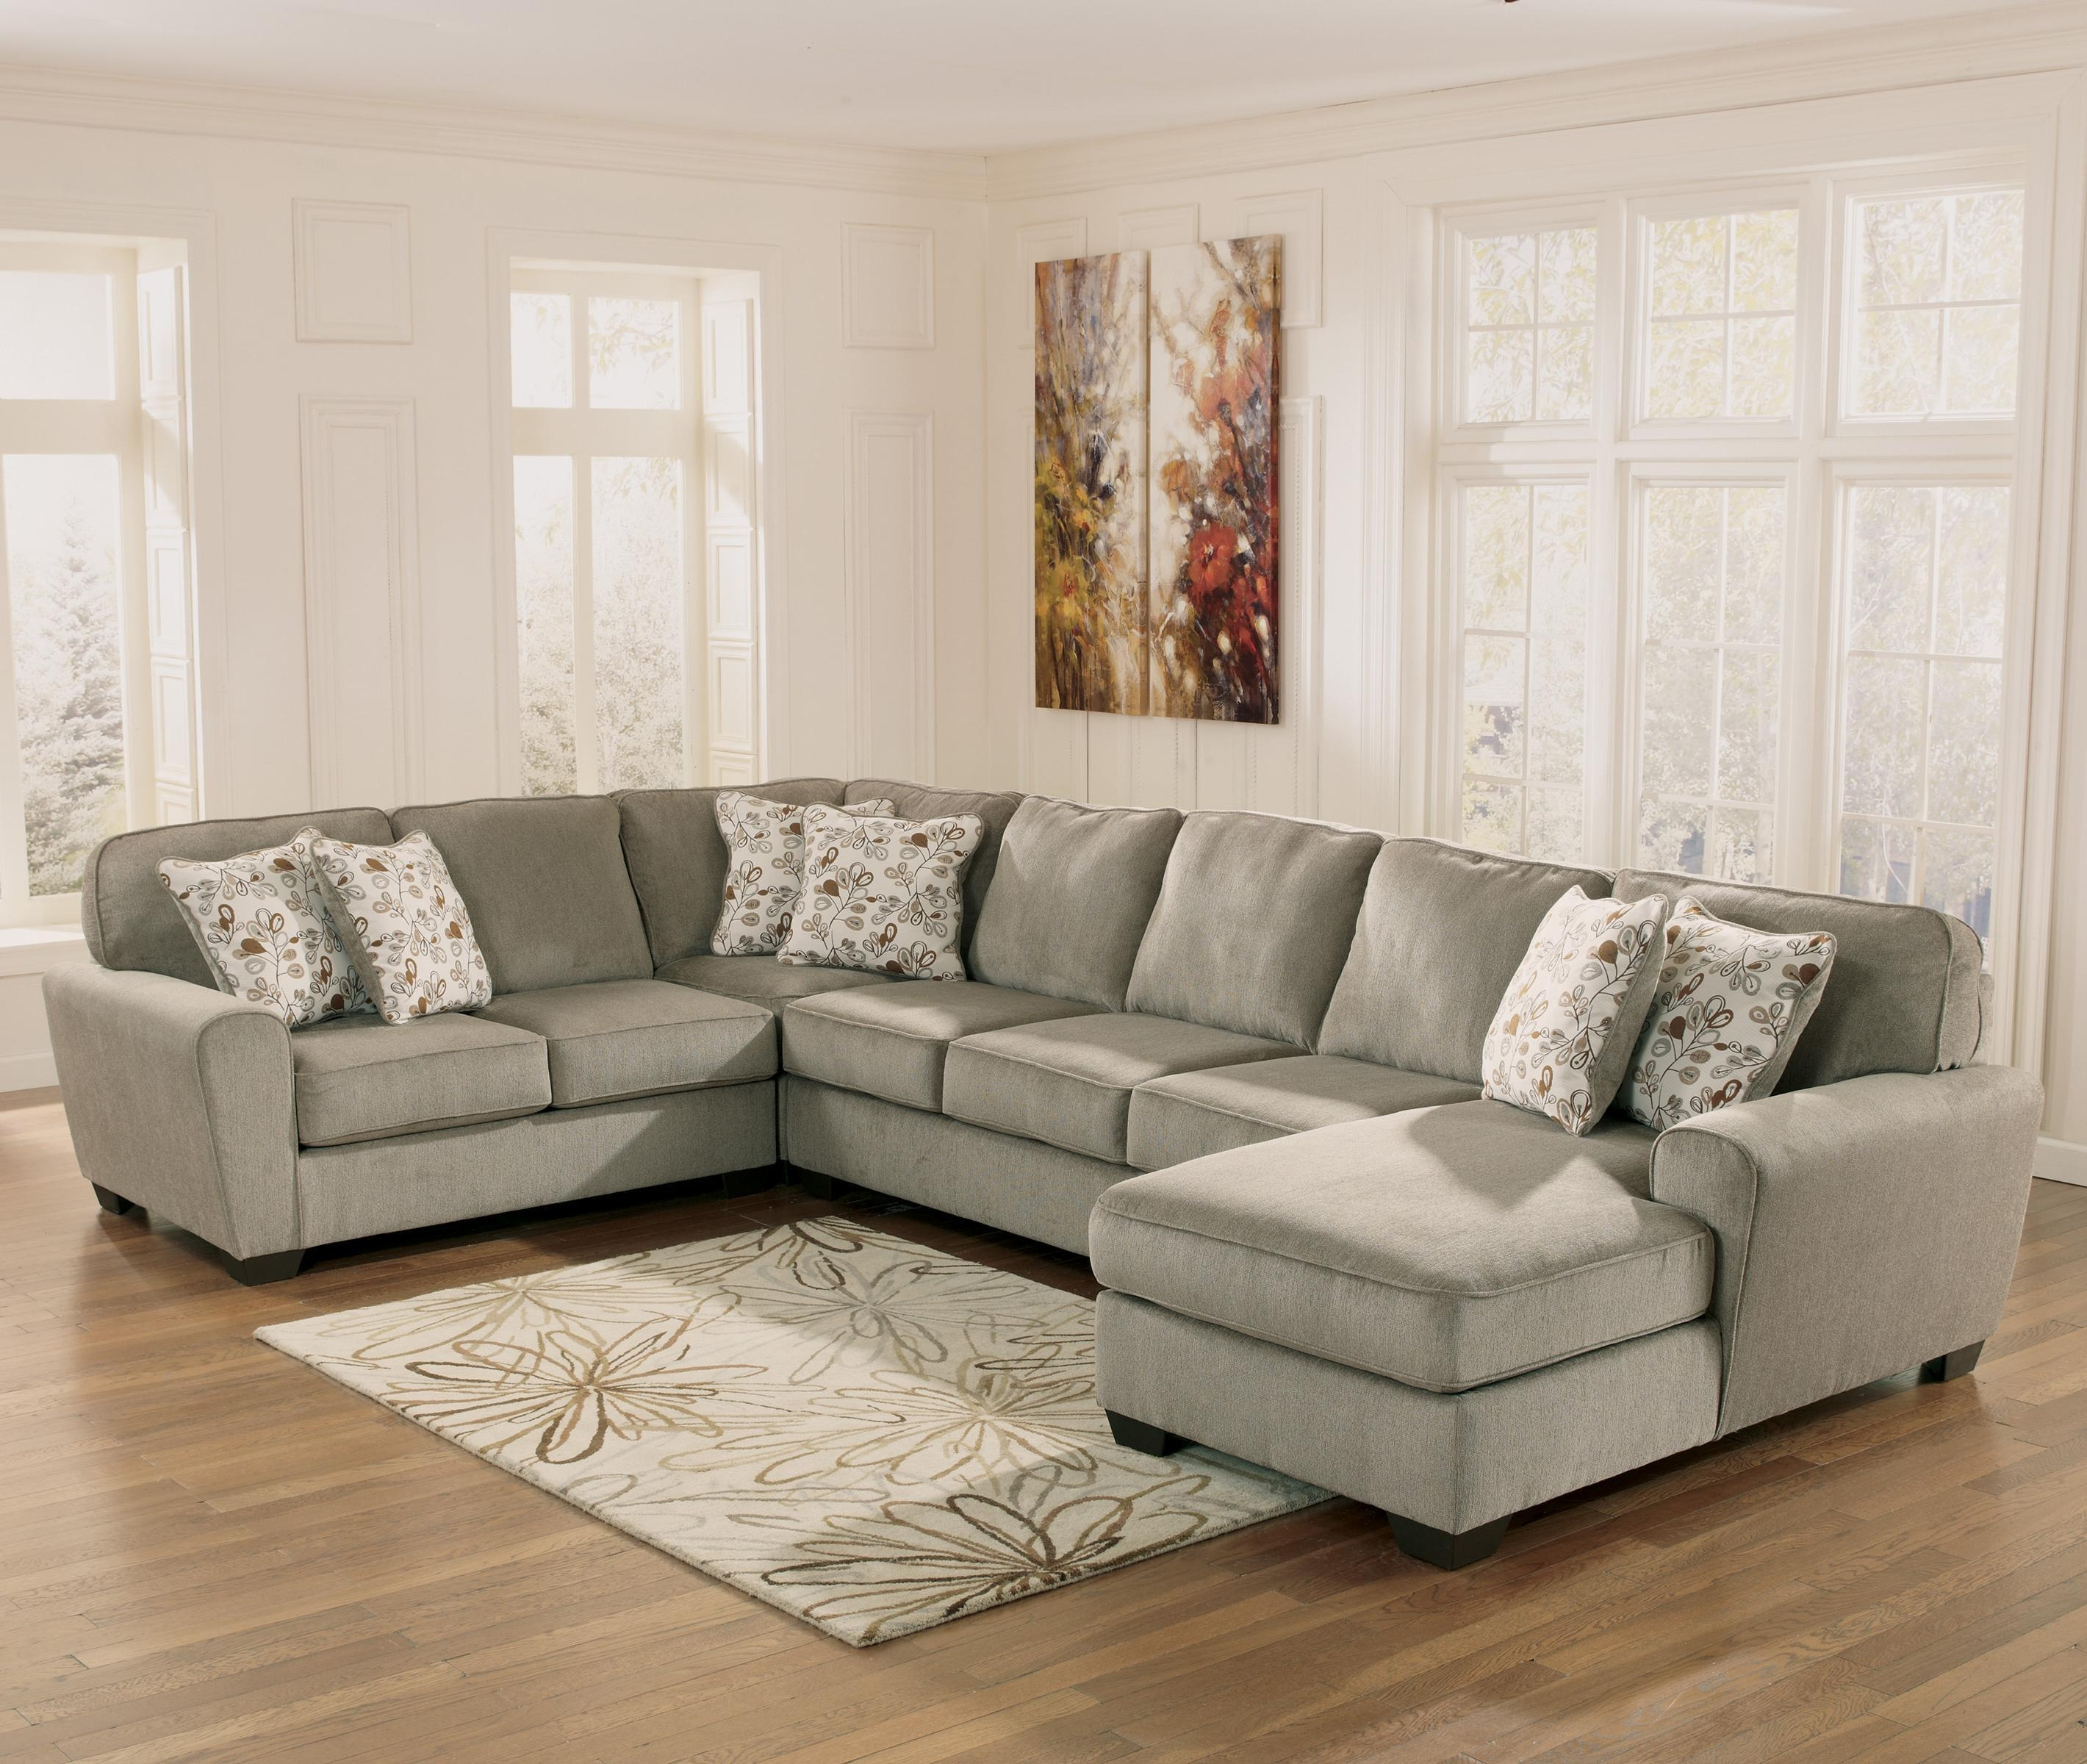 Ashley Furniture Patola Park – Patina 4 Piece Sectional With Right Inside Ashley Furniture Corduroy Sectional Sofas (Image 2 of 20)